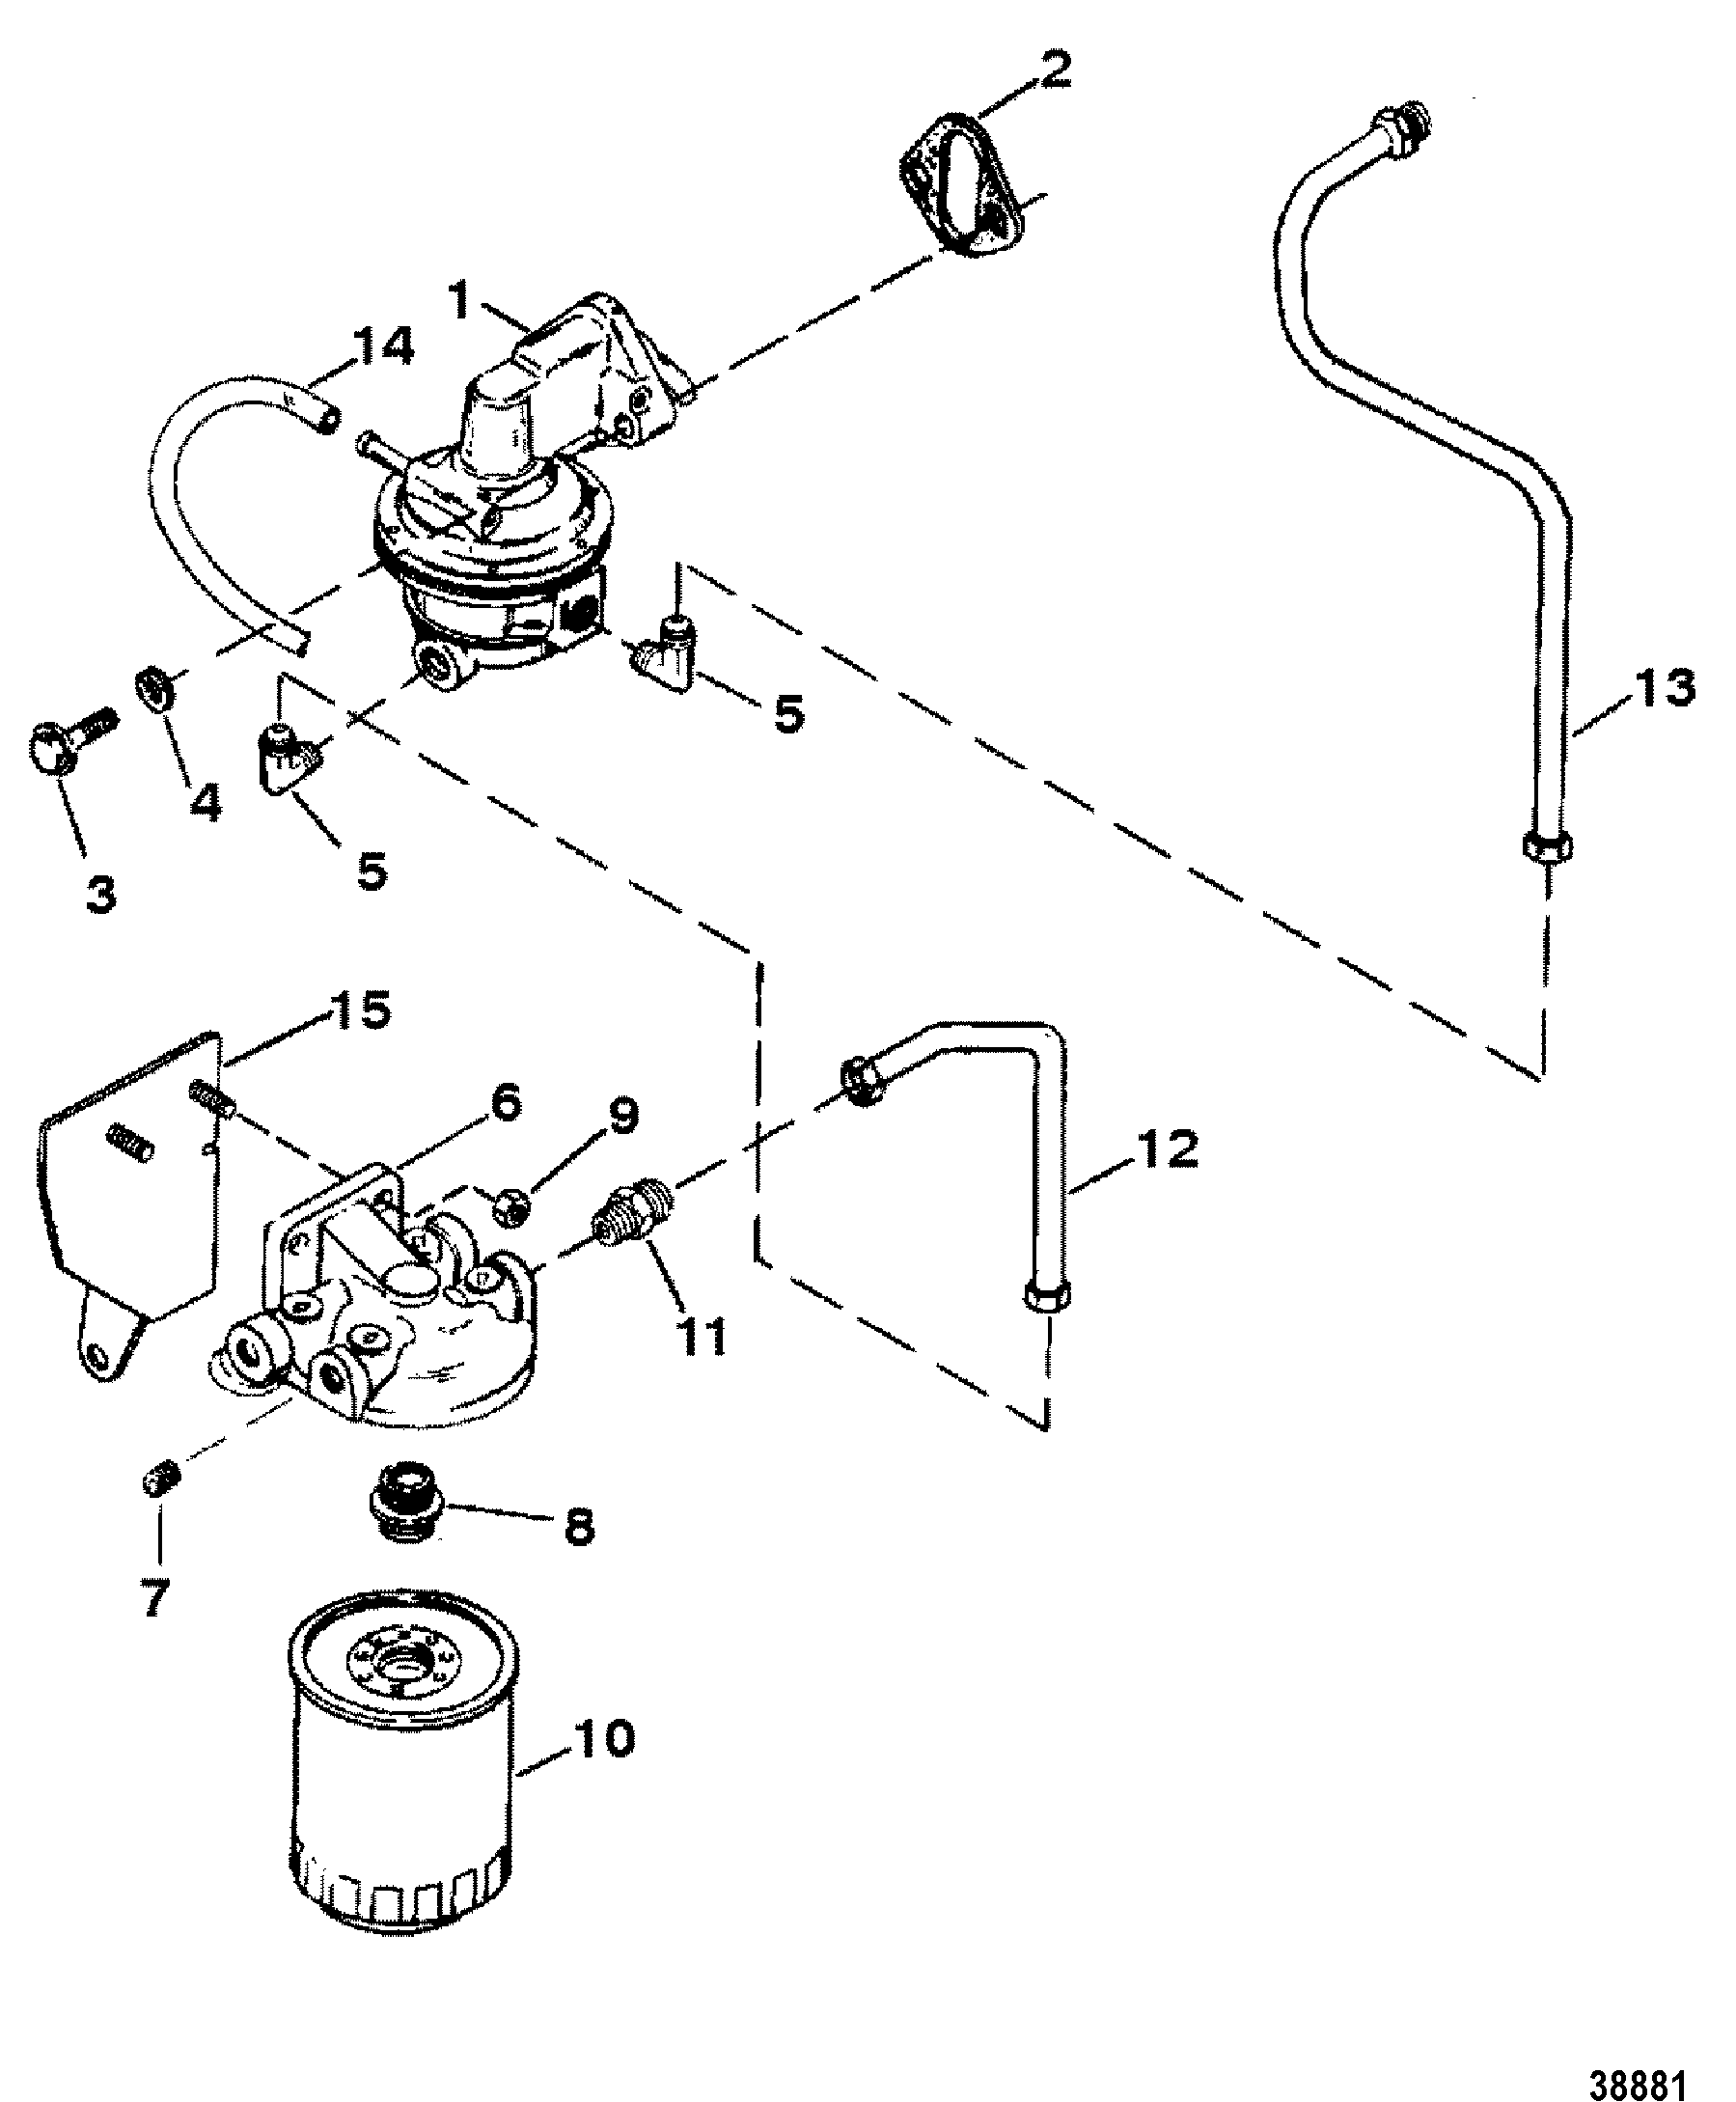 1998 S10 Fuel System Diagram